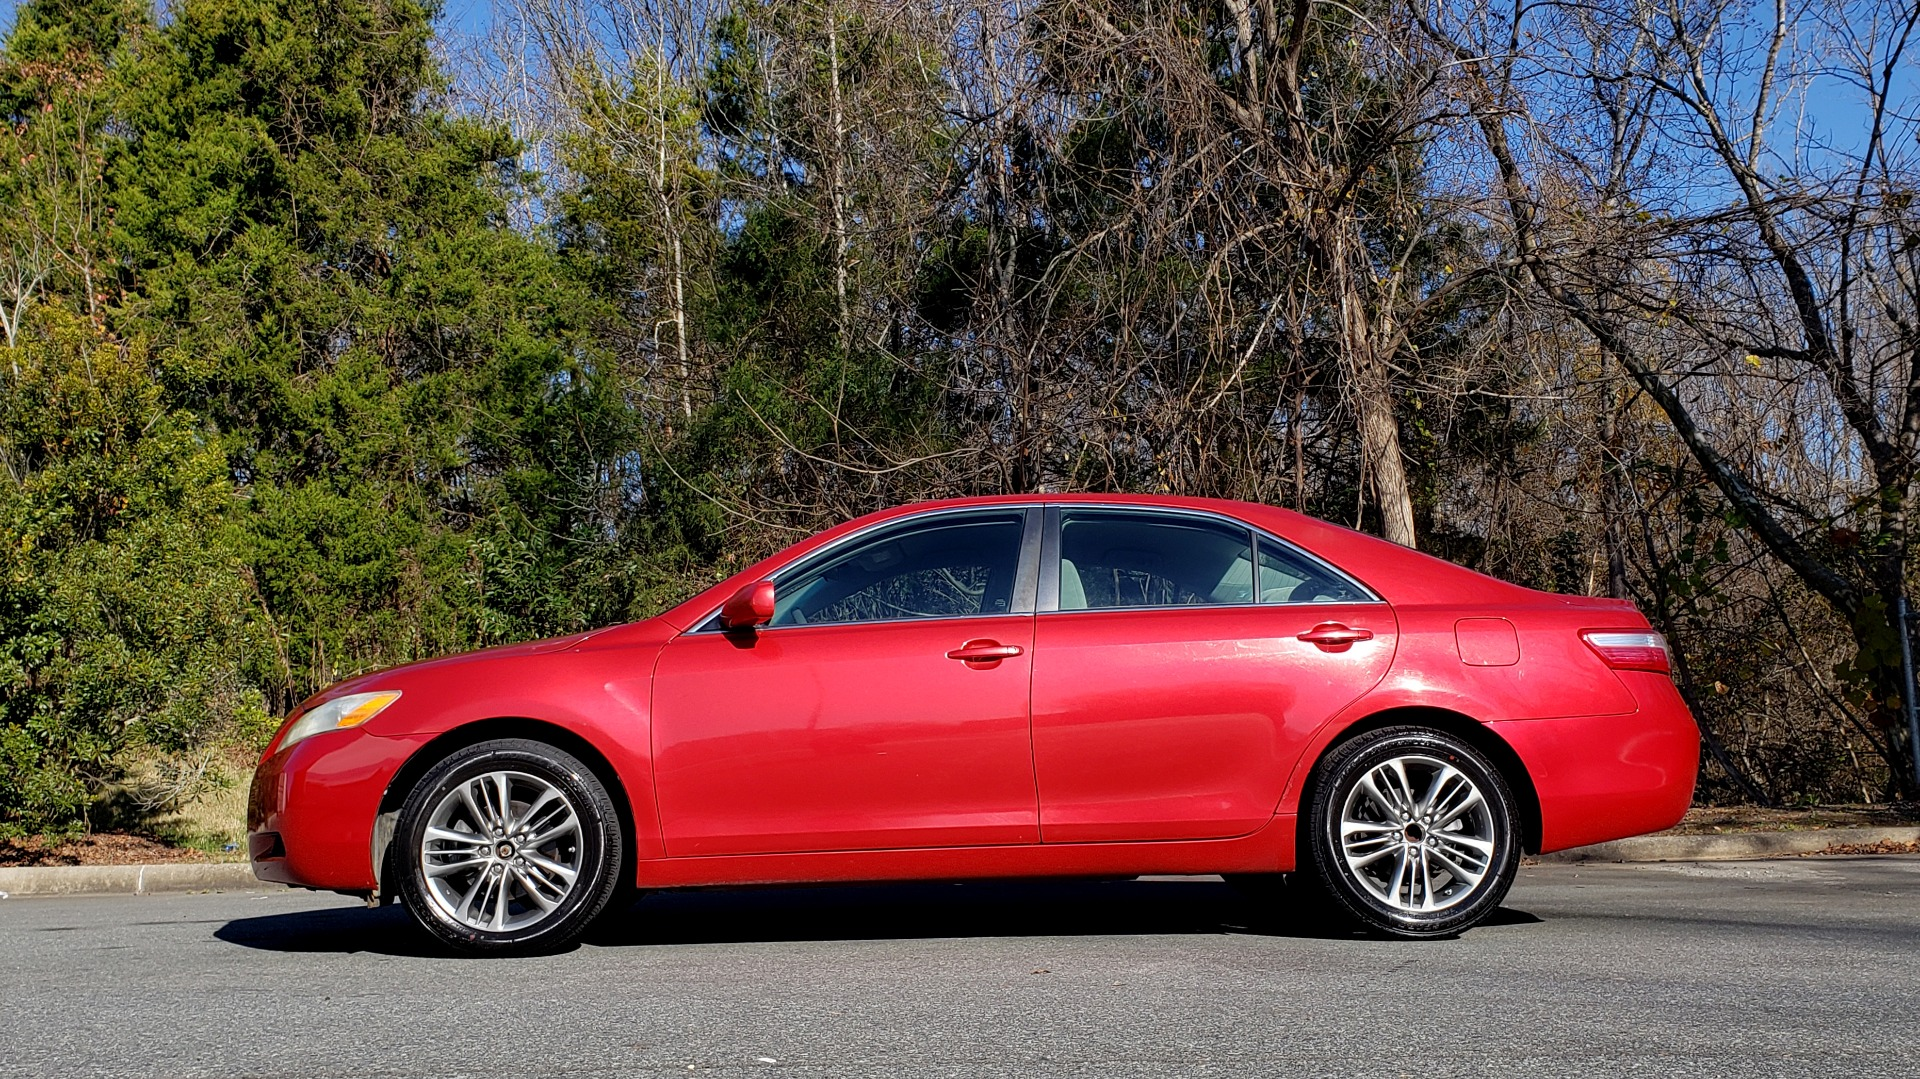 Used 2009 Toyota CAMRY LE / 2.4L SEDAN / FWD / 4-CYL / AUTO / CLOTH / CLEAN for sale Sold at Formula Imports in Charlotte NC 28227 2